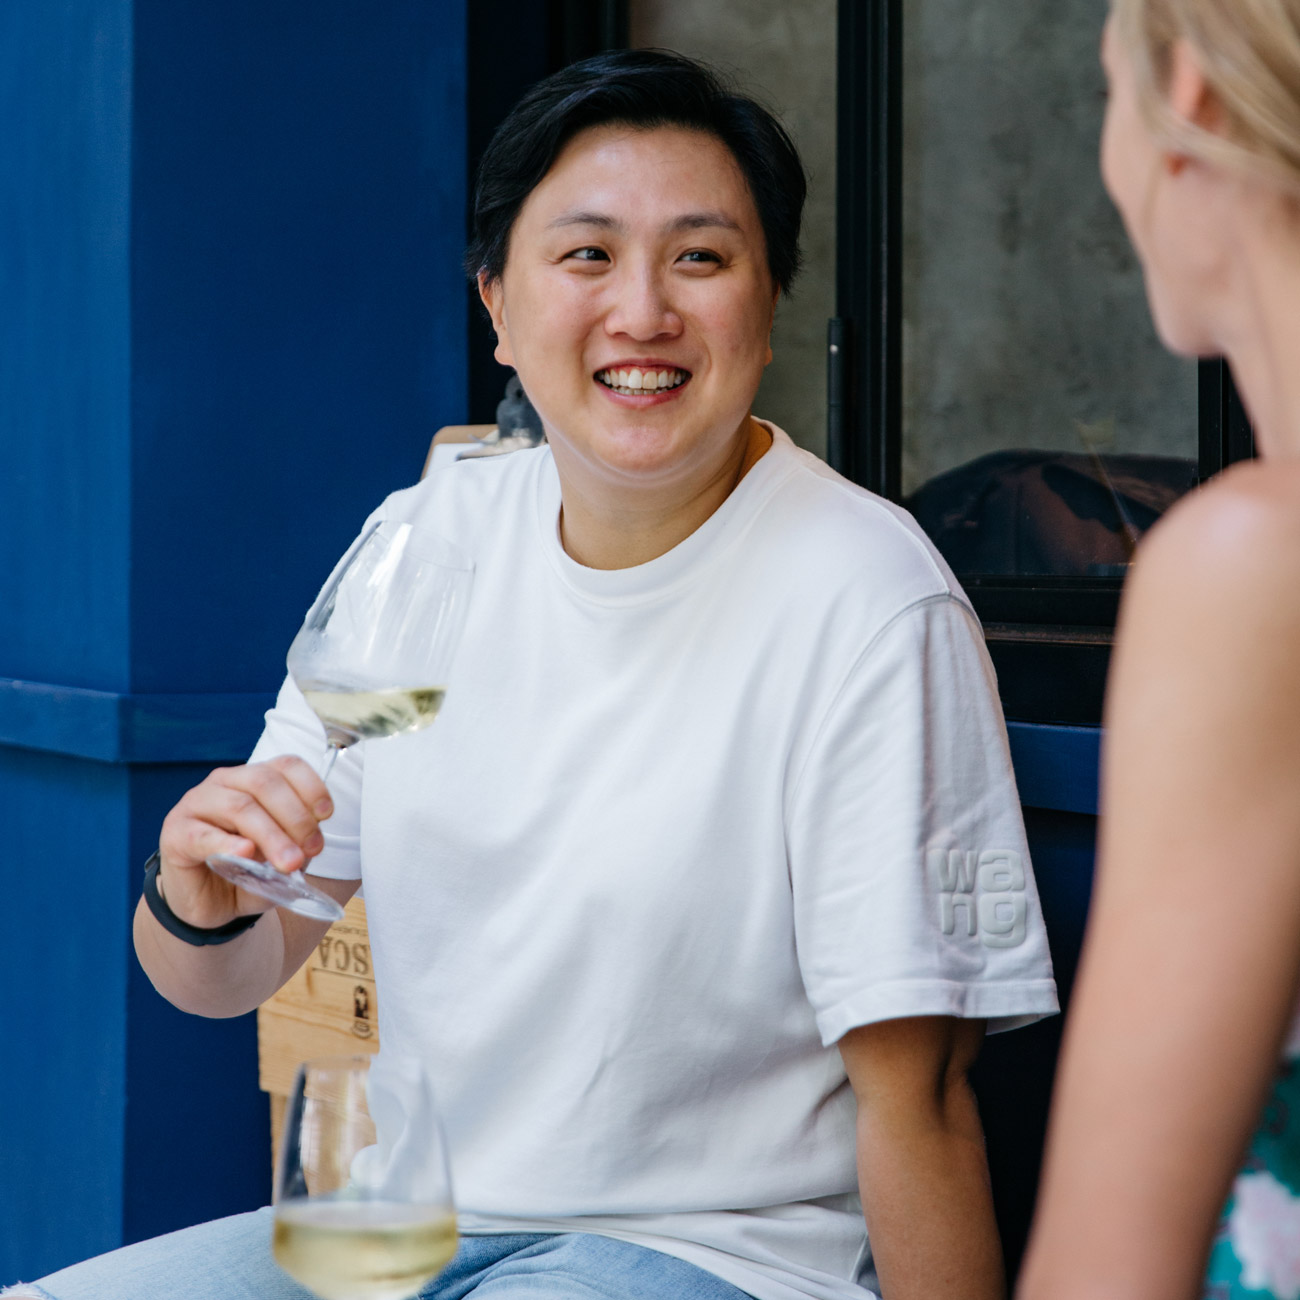 Roots Eatery chef and founder Stephanie Wong enjoys a Sunday conversation with Camille Lisette Glass